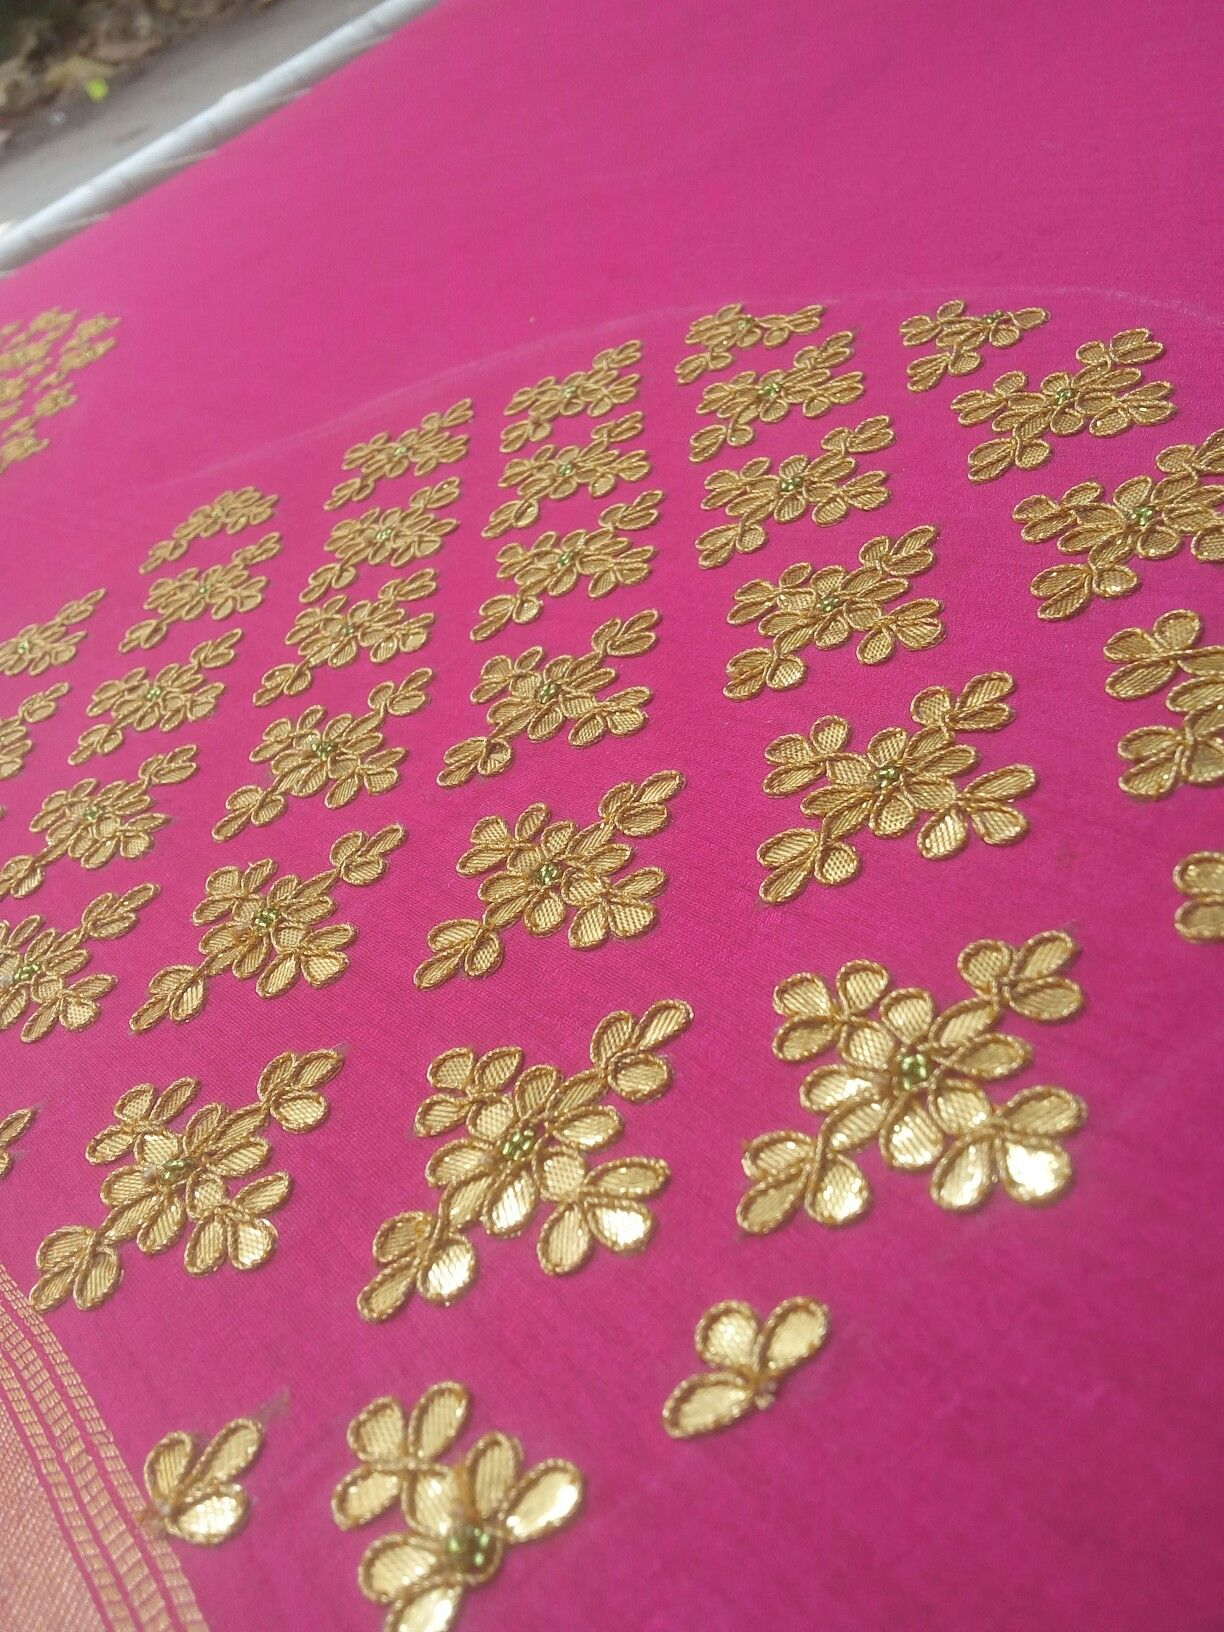 Gota Patti Work | Gota Patti Work | Pinterest | Embroidery Indian Wear And Blouse Designs